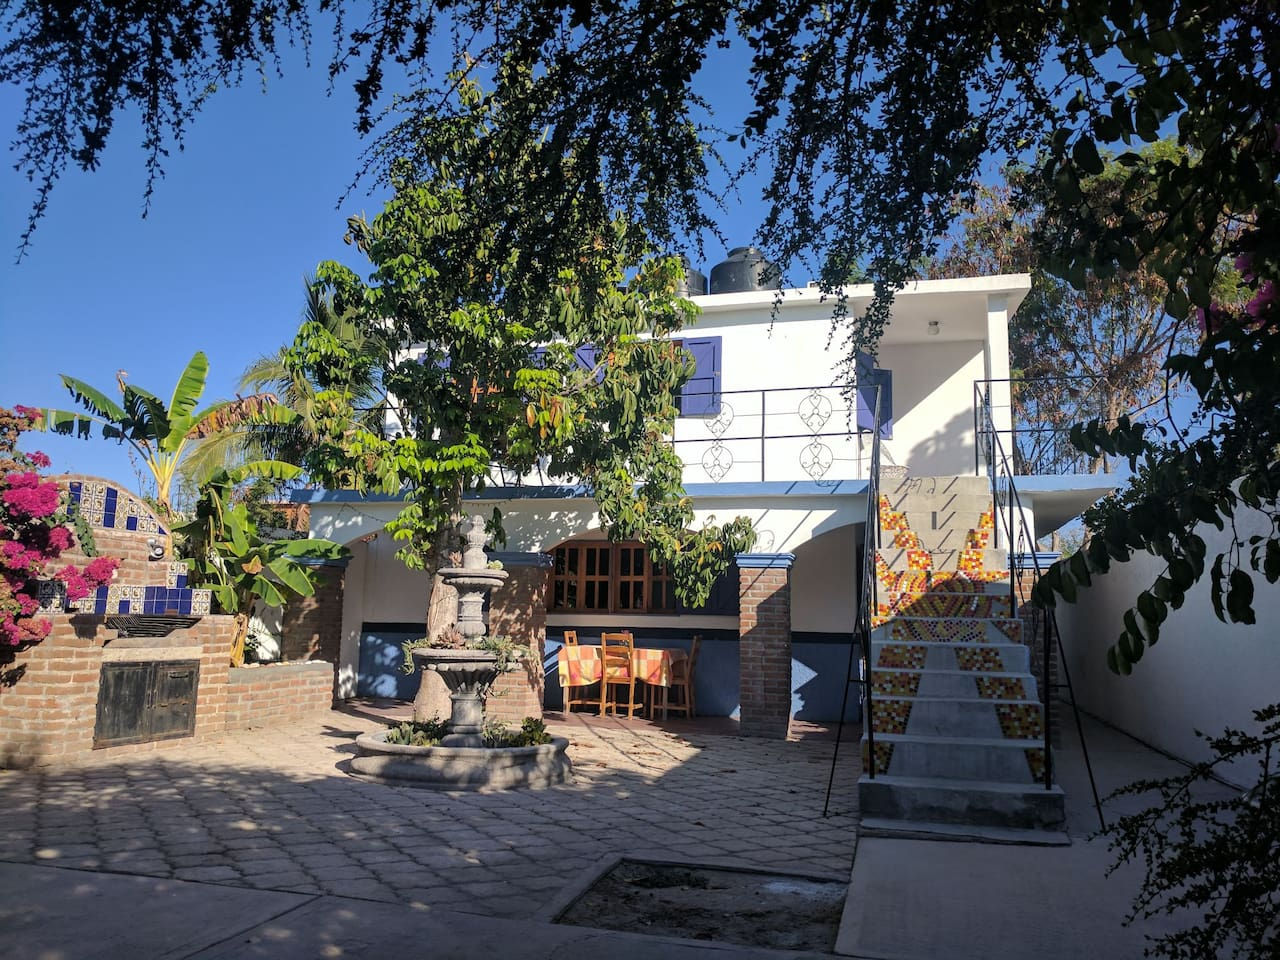 The courtyard. Both the upstairs and down stairs units are for rent. This listing is the top of the units.